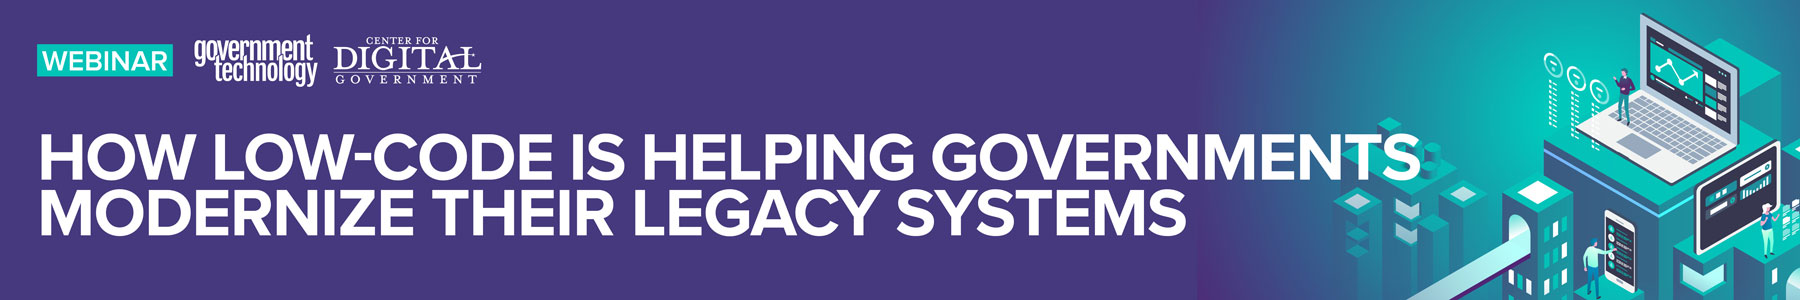 How Low-Code is Helping Governments Modernize Their Legacy Systems